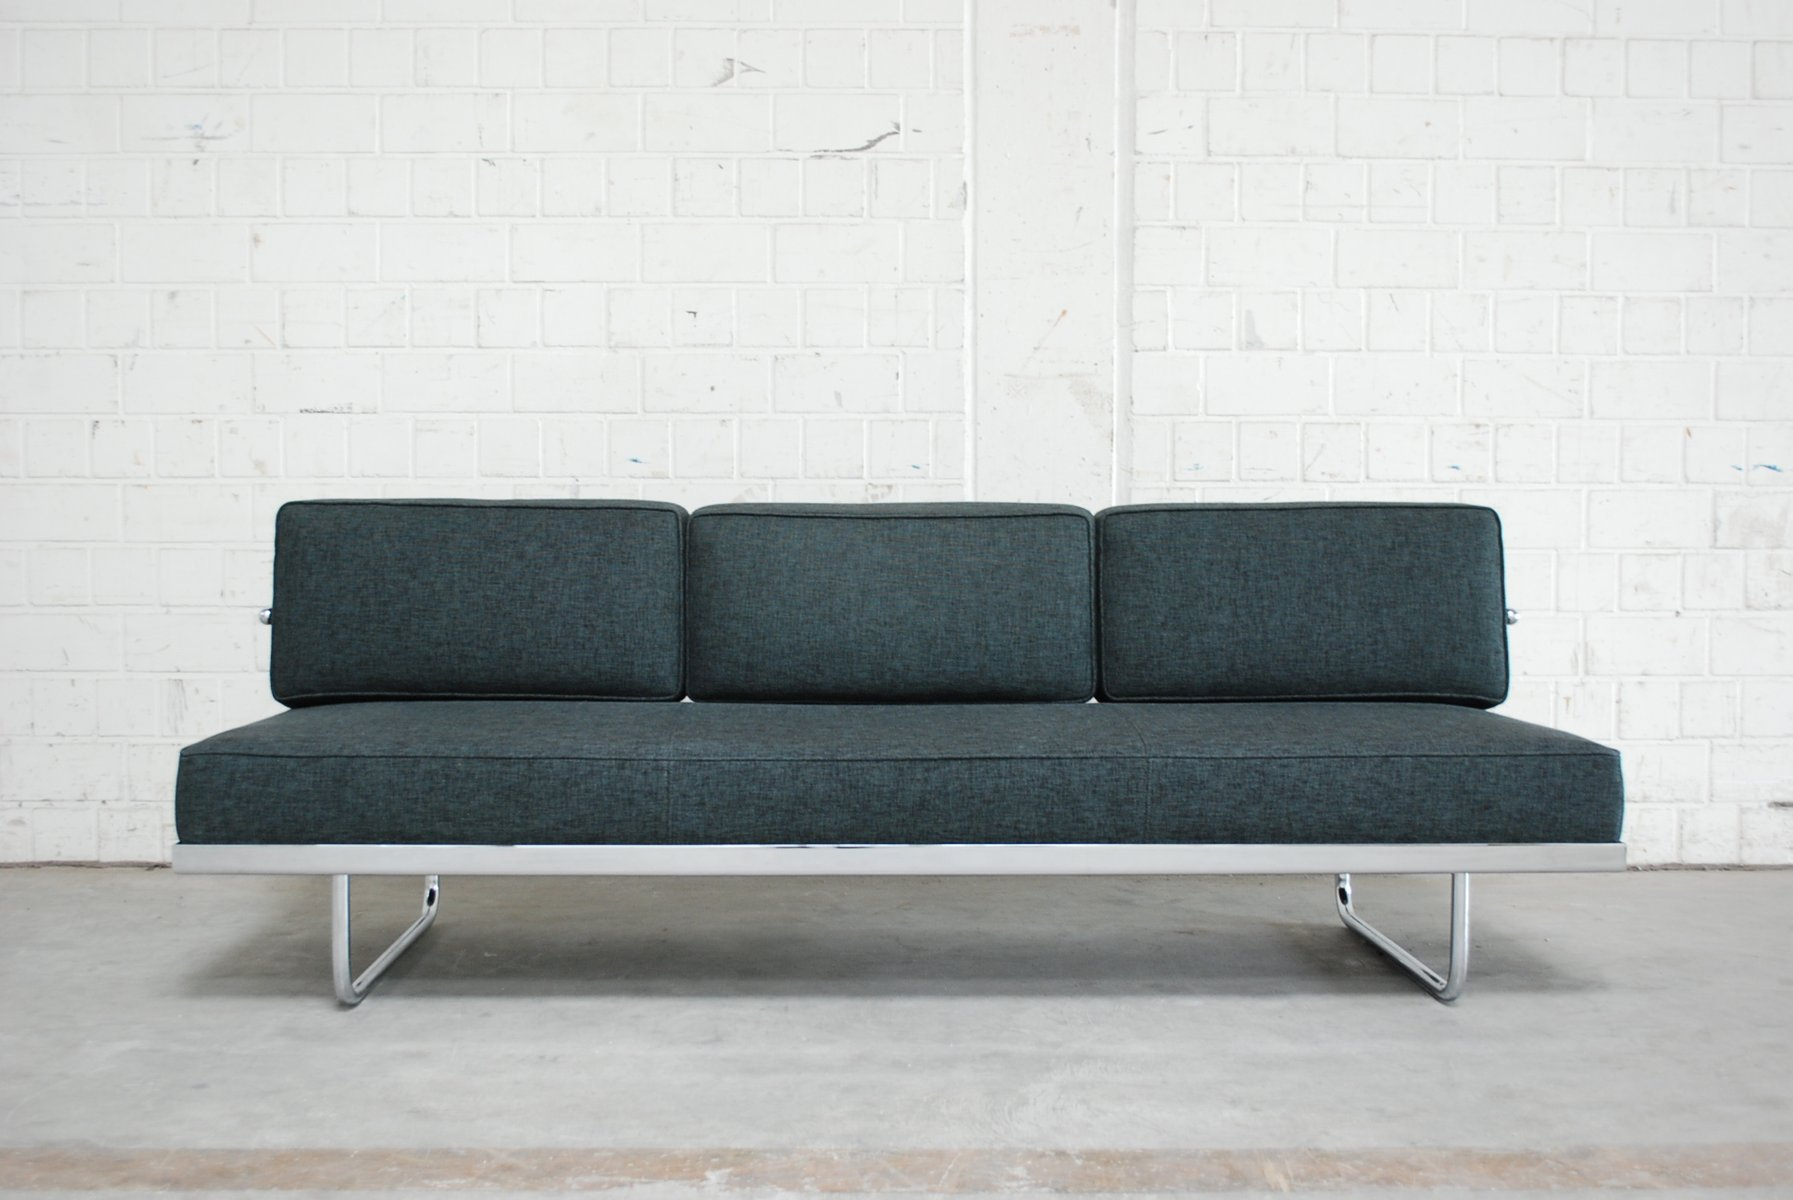 Schlafcouch Vintage Vintage Lc5 F Schlafsofa Von Le Corbusier Fr Cassina Bei